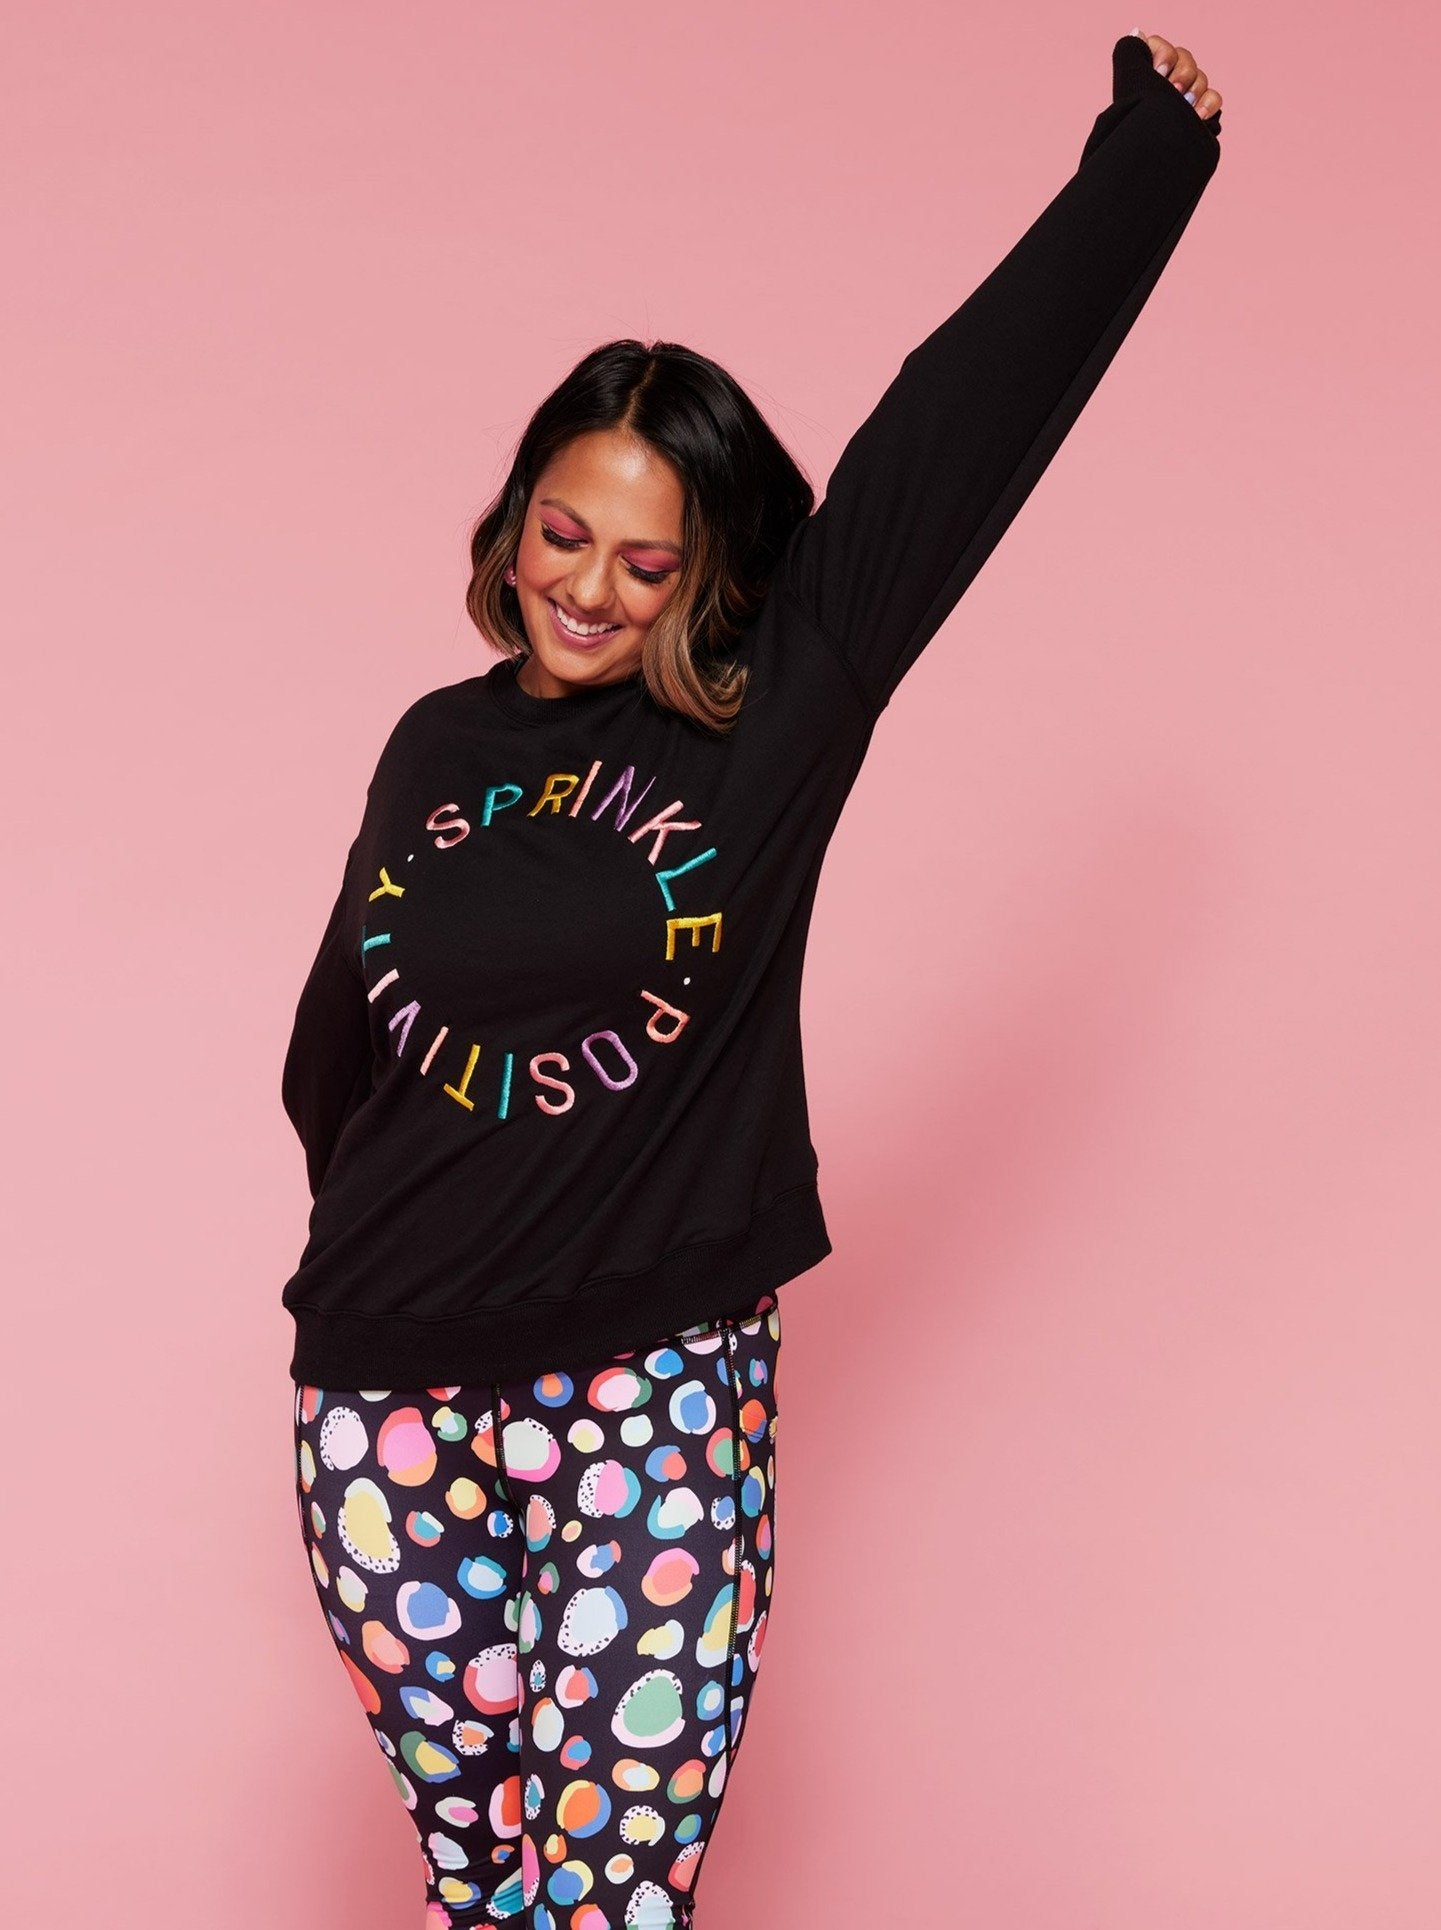 Sprinkle Positivity Sweatshirt Jumper - Black (PREORDER) - Mama Movement